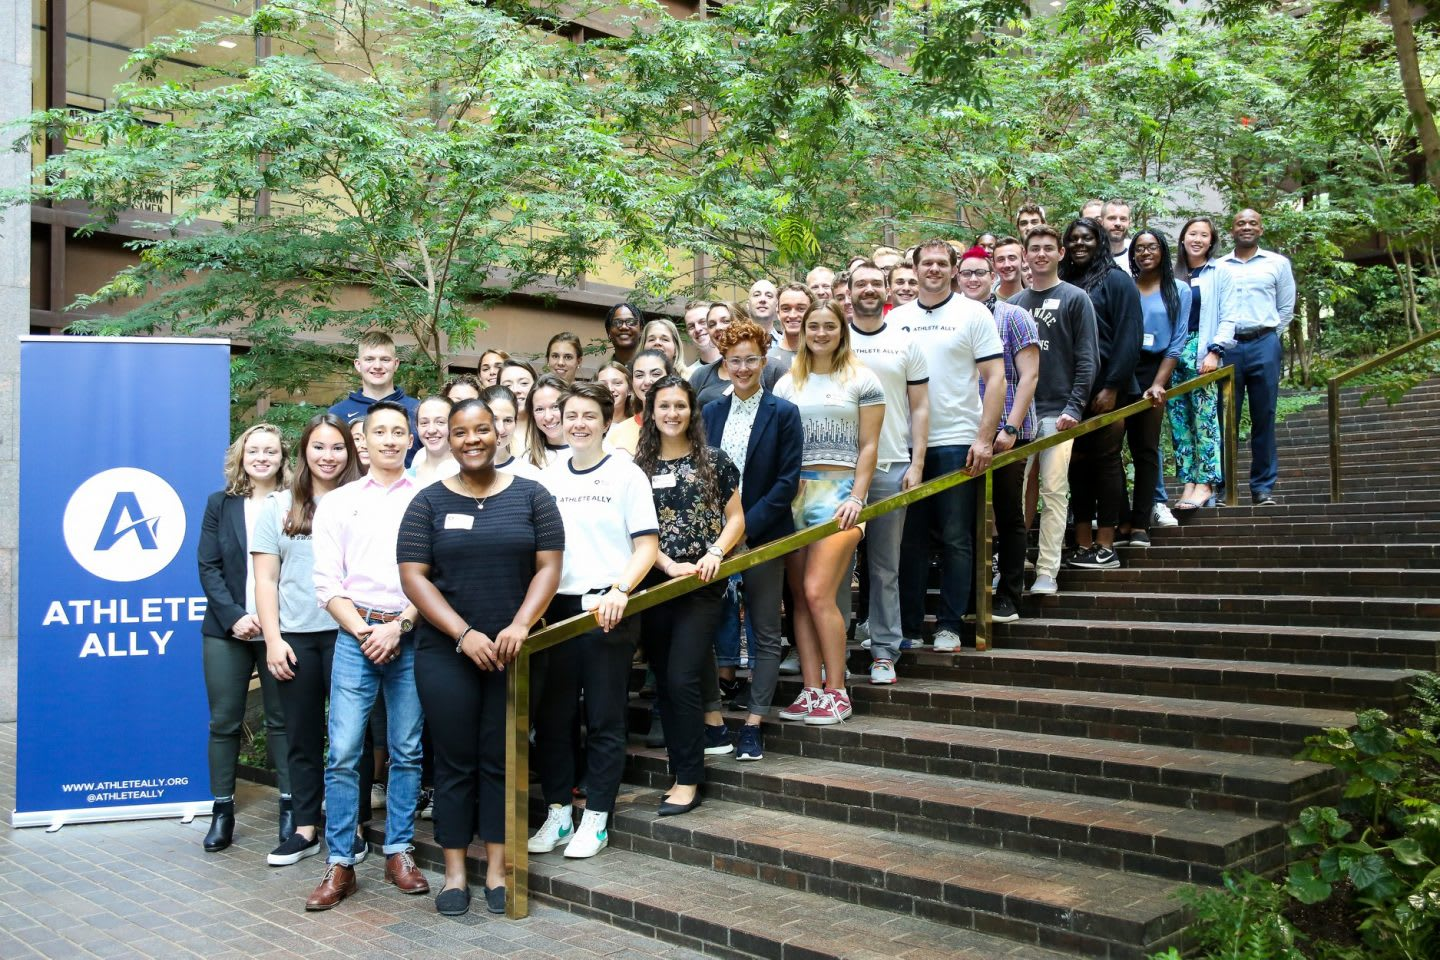 Men and women standing on steps in front of Athlete Ally sign, students, summit, conference, LGBTQ